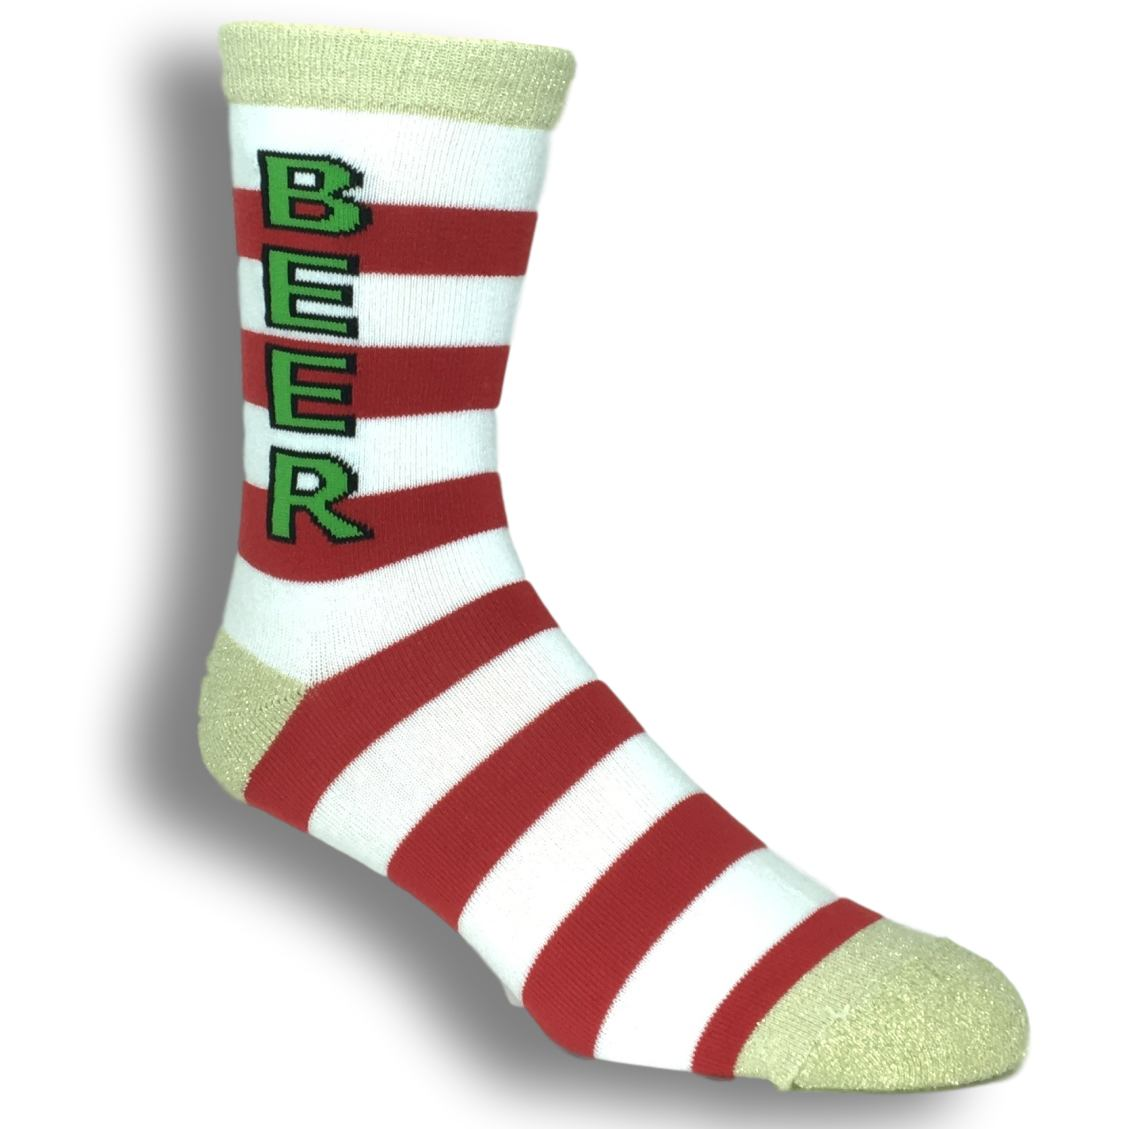 Christmas Beer Socks by Gumball Poodle - The Sock Spot